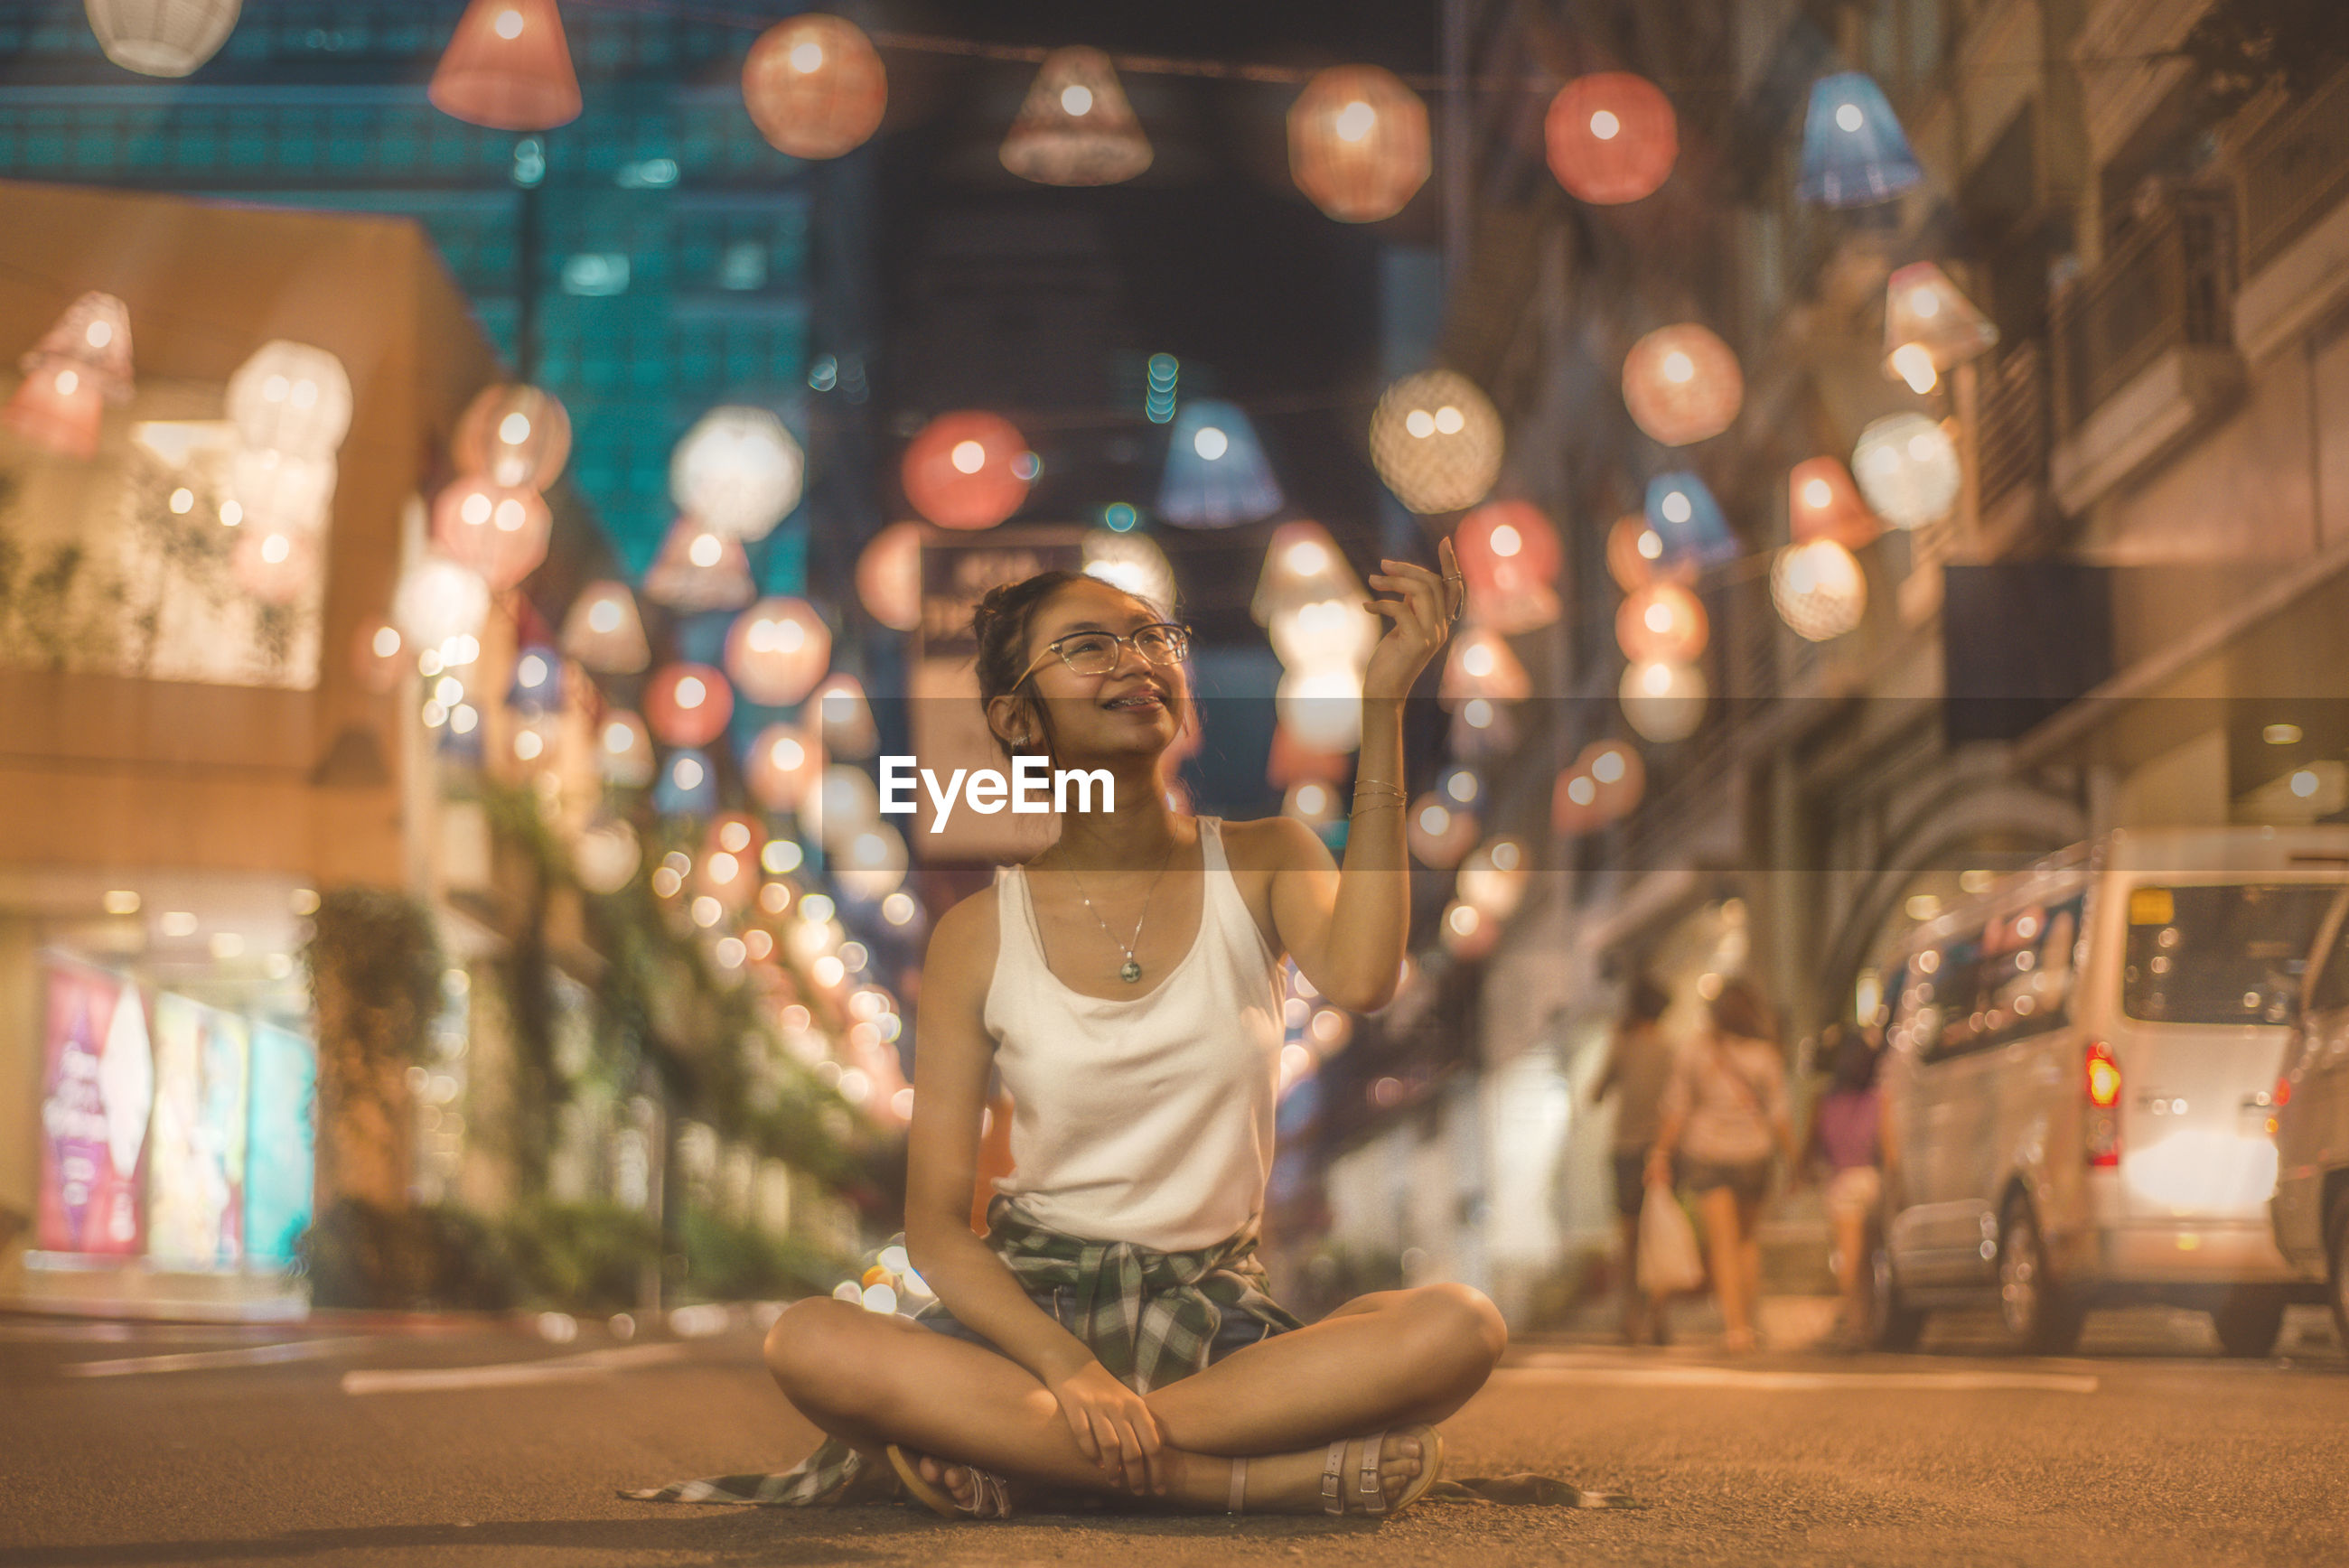 Full length of smiling young woman sitting against decorations on road in city at night